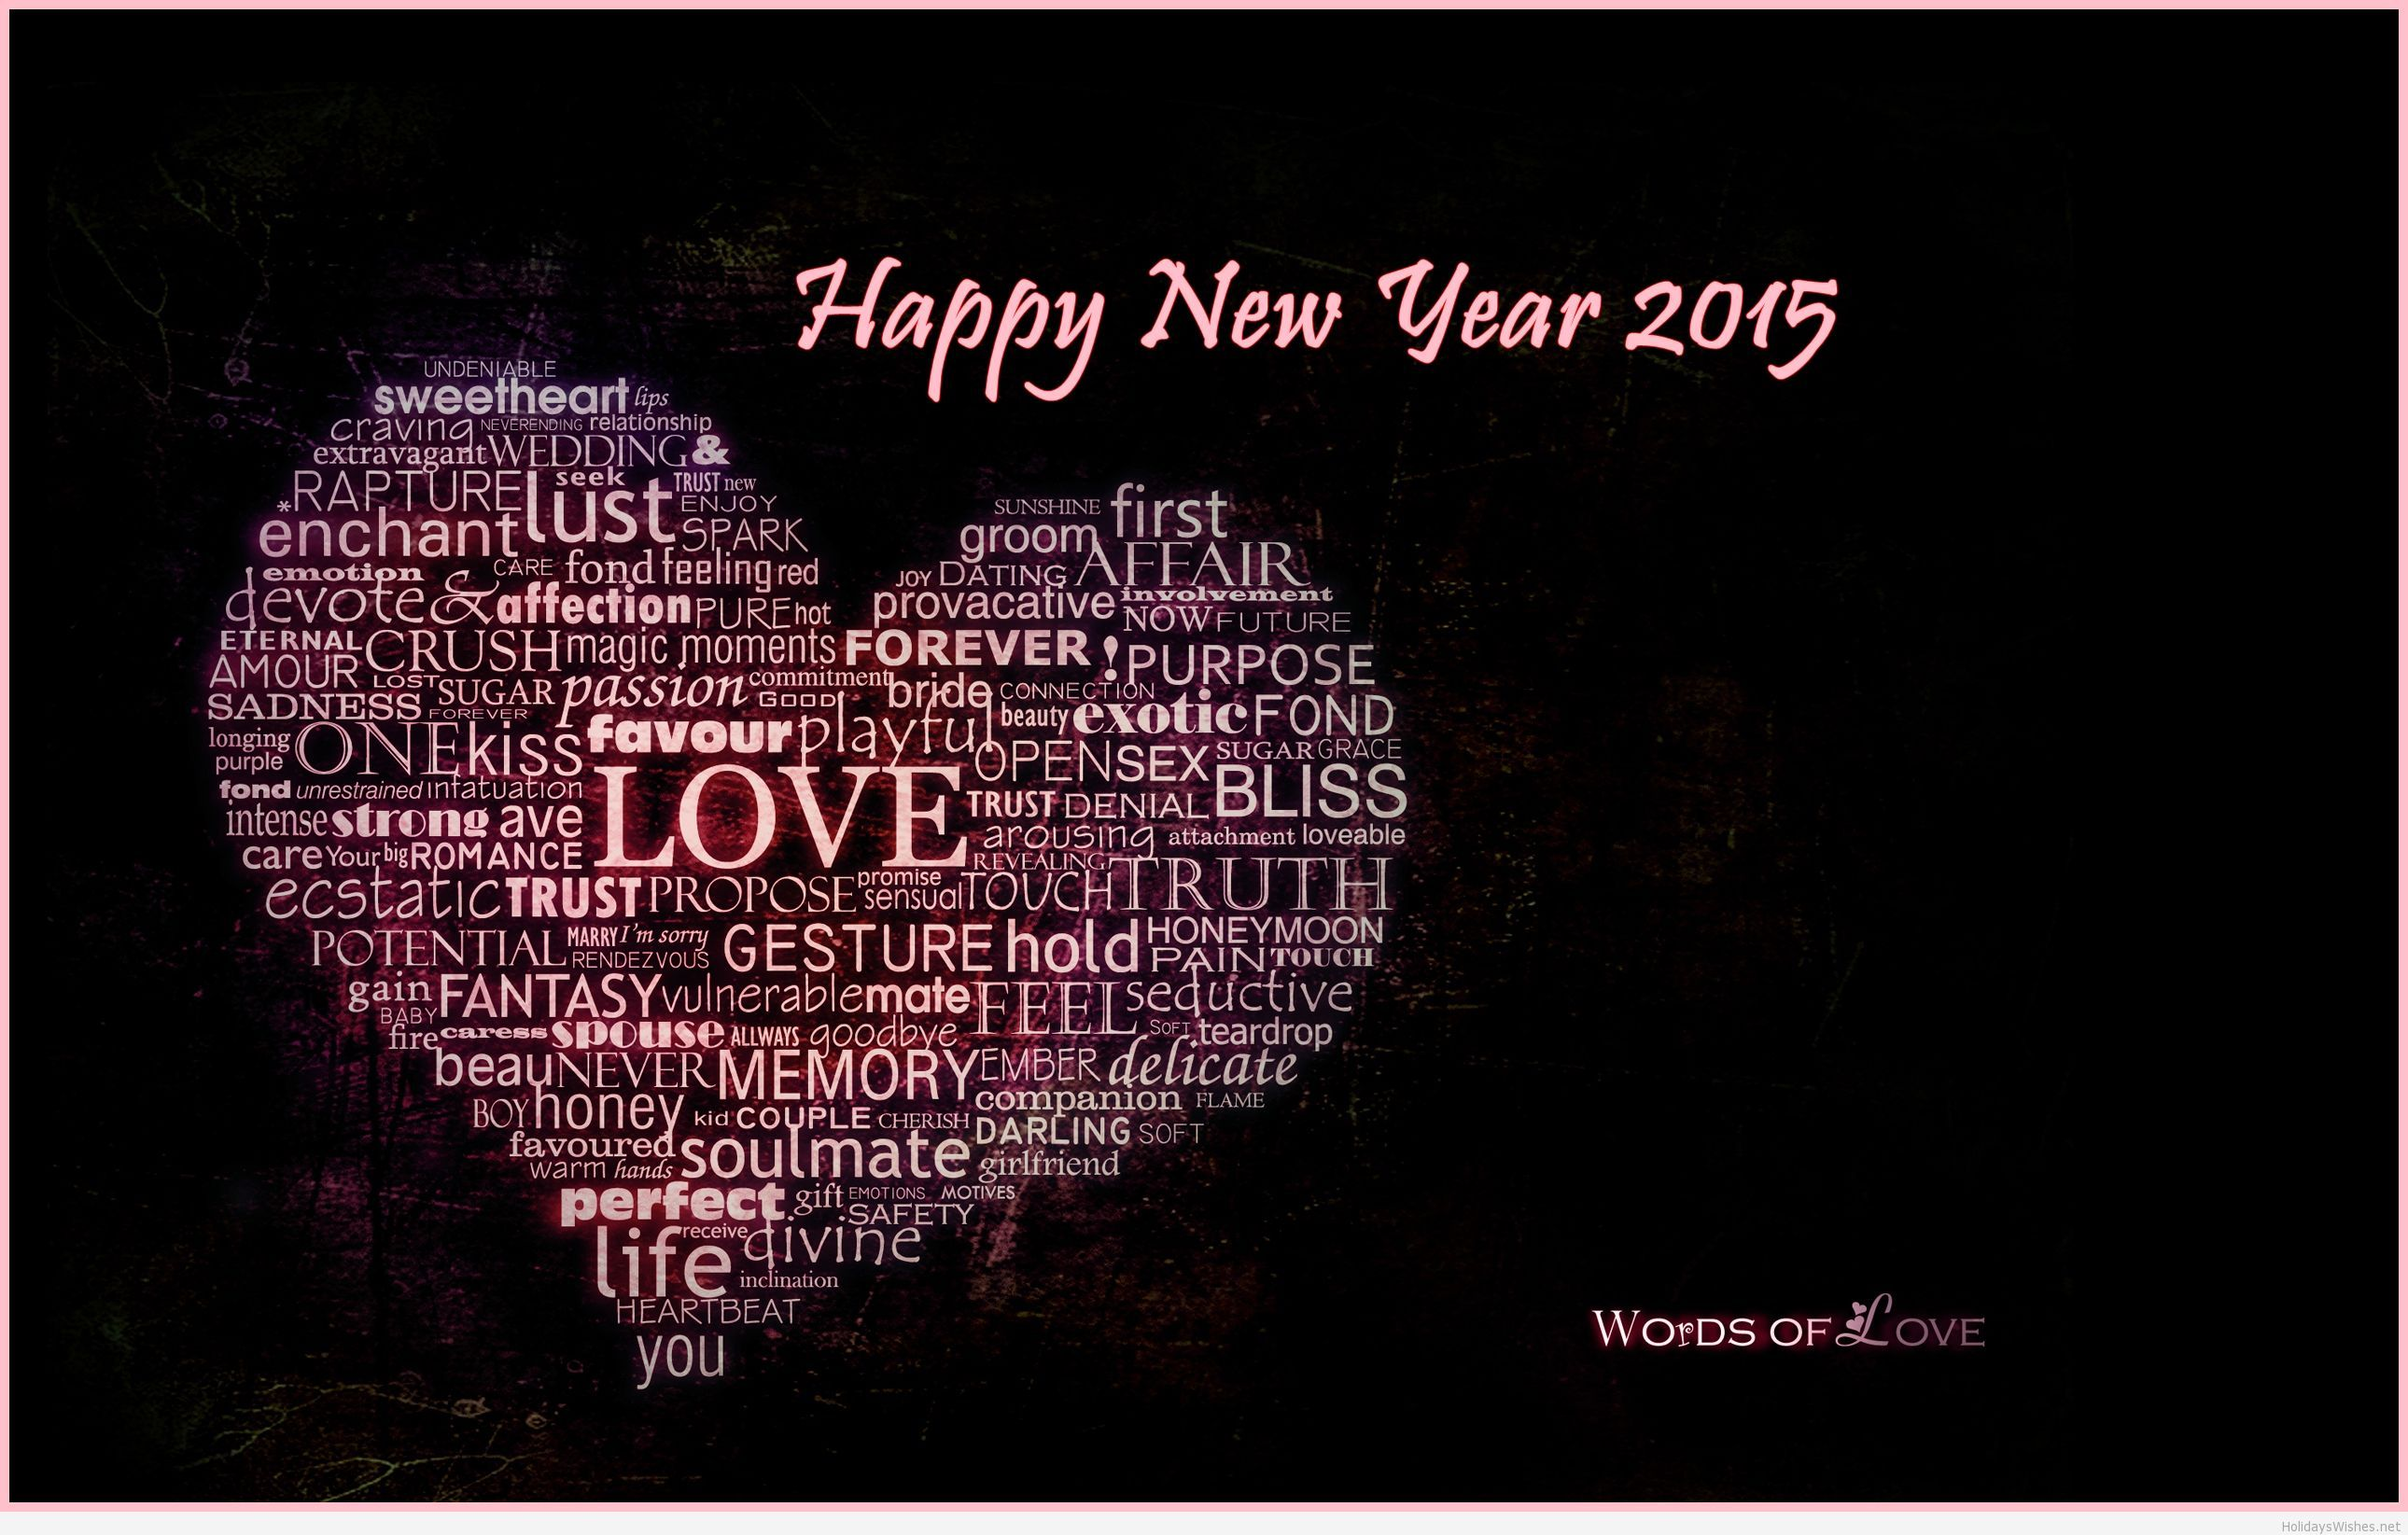 Wishes for all through new year 2015 wishes for friends girl friend wishes for all through new year 2015 wishes for friends girl friend parents kristyandbryce Gallery